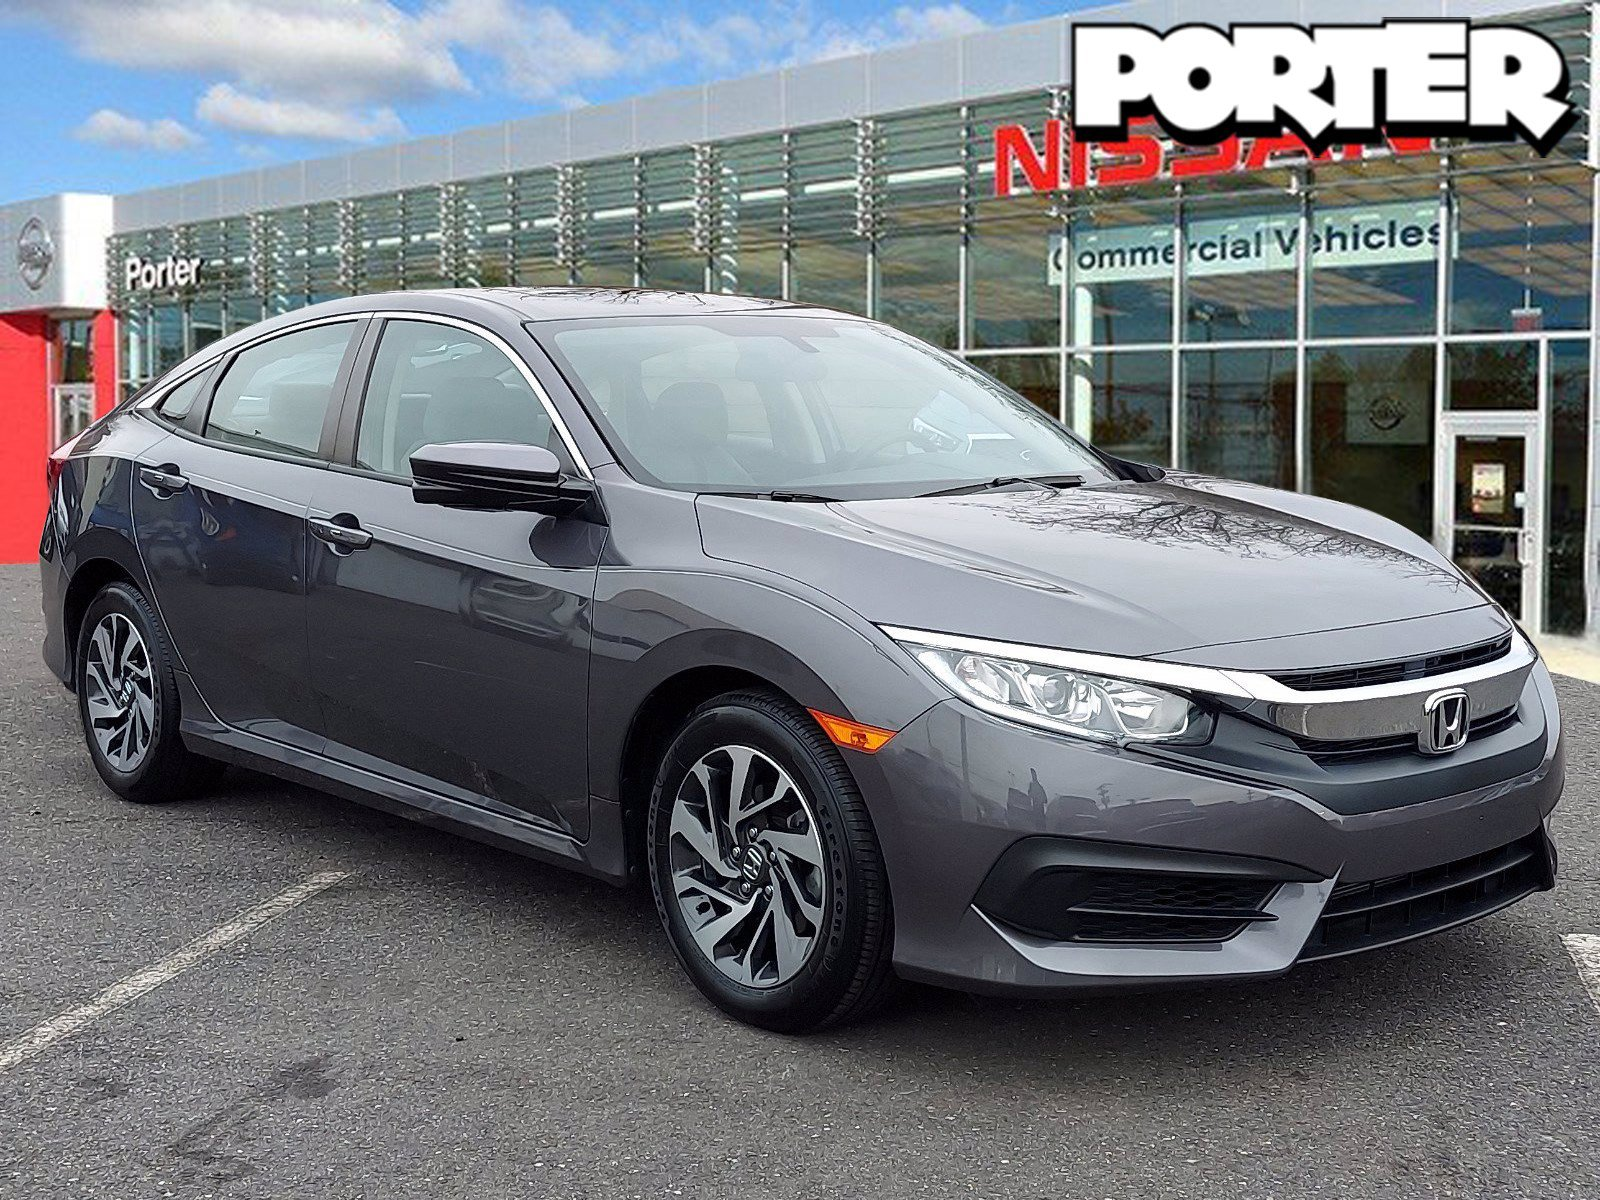 2017 Honda Civic Sedan EX EX CVT Regular Unleaded I-4 2.0 L/122 [1]